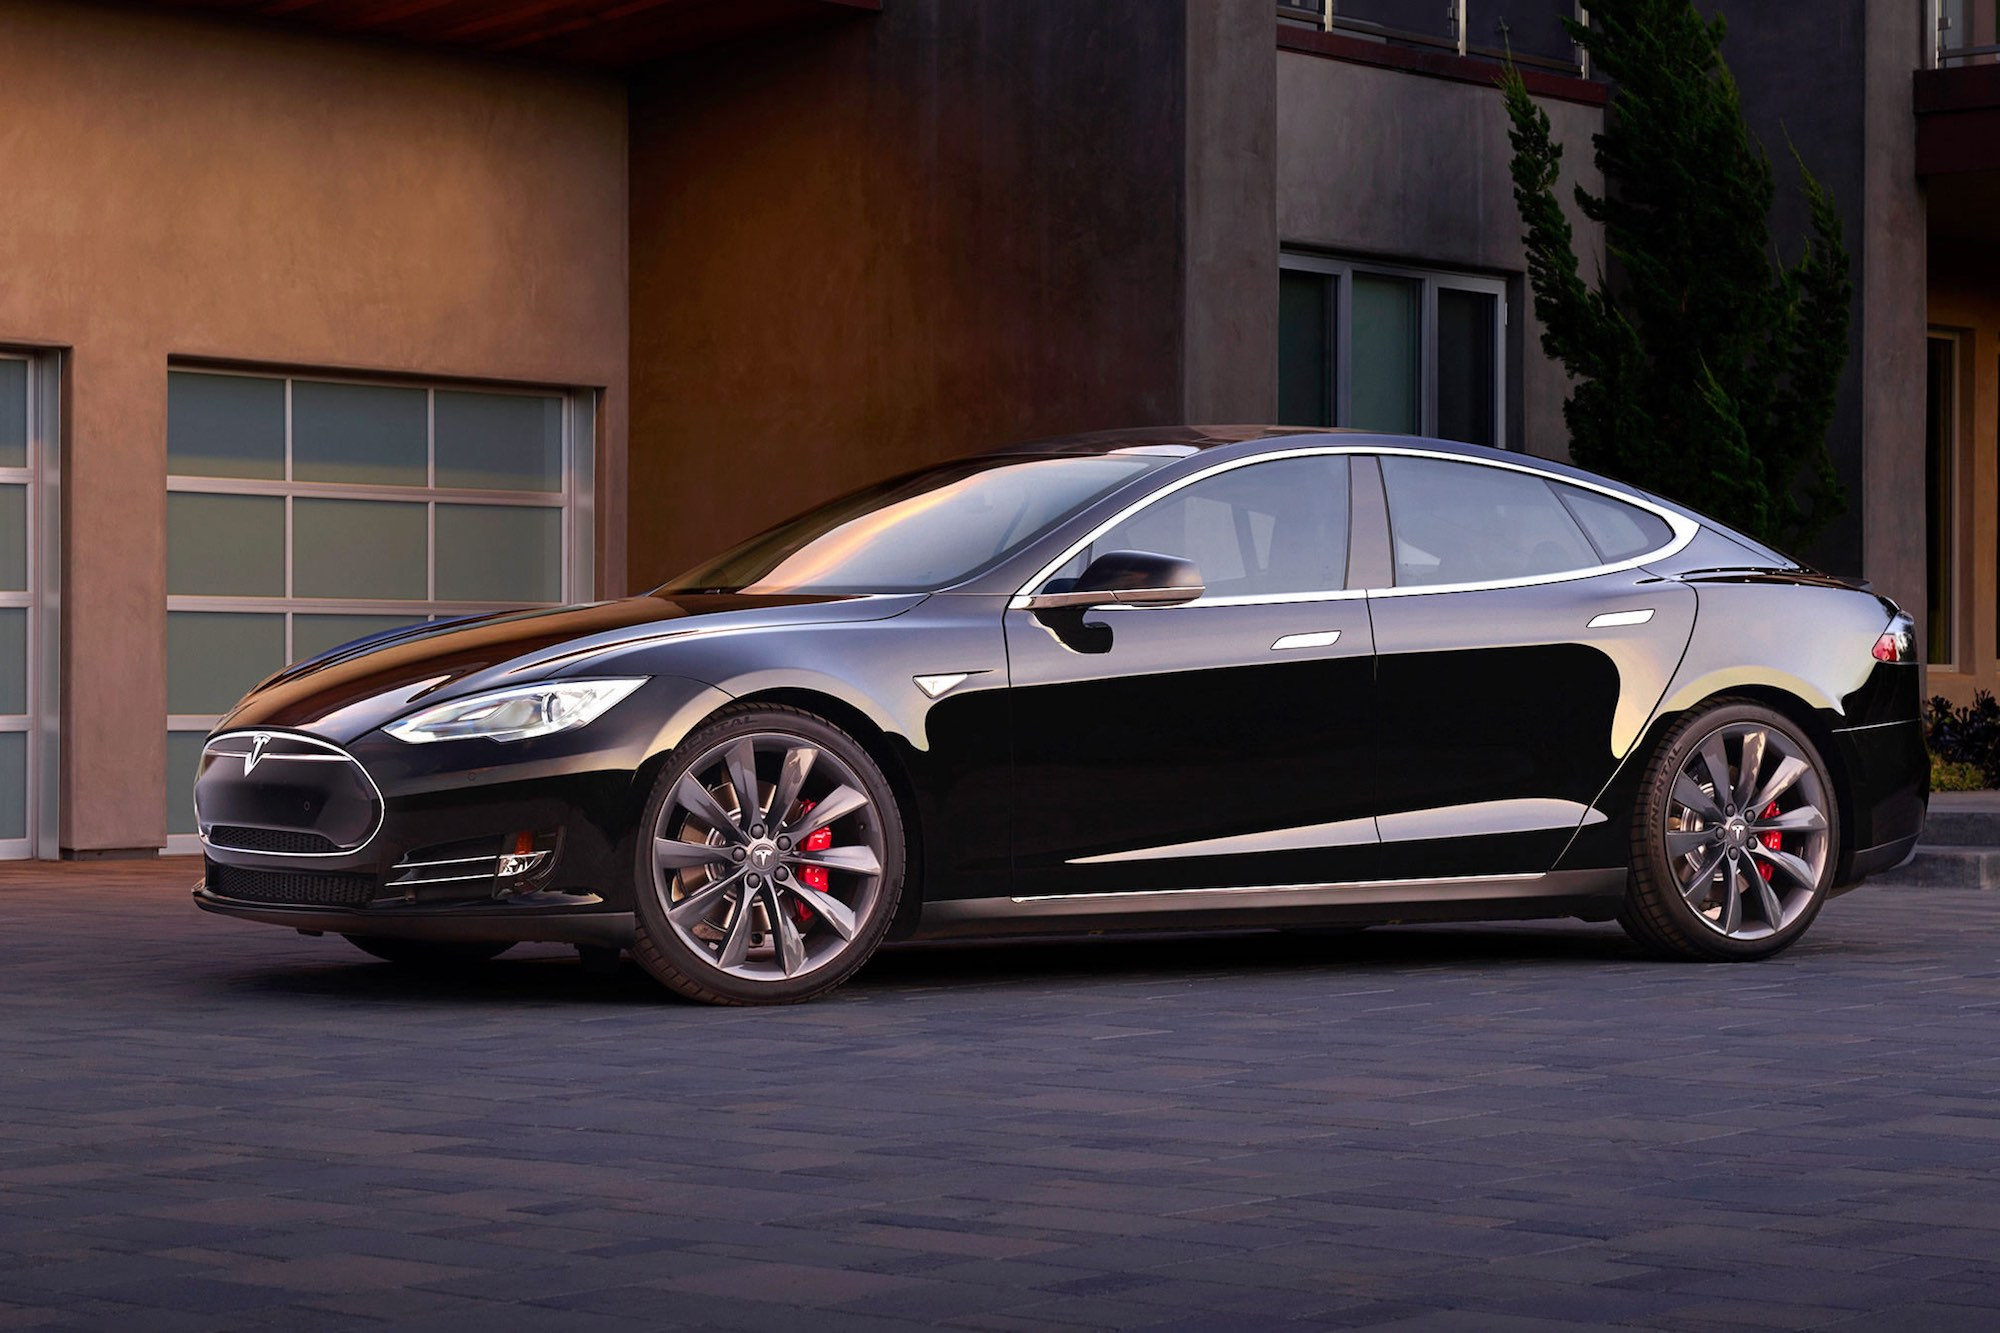 Tesla Model S in black with Turbine Wheels